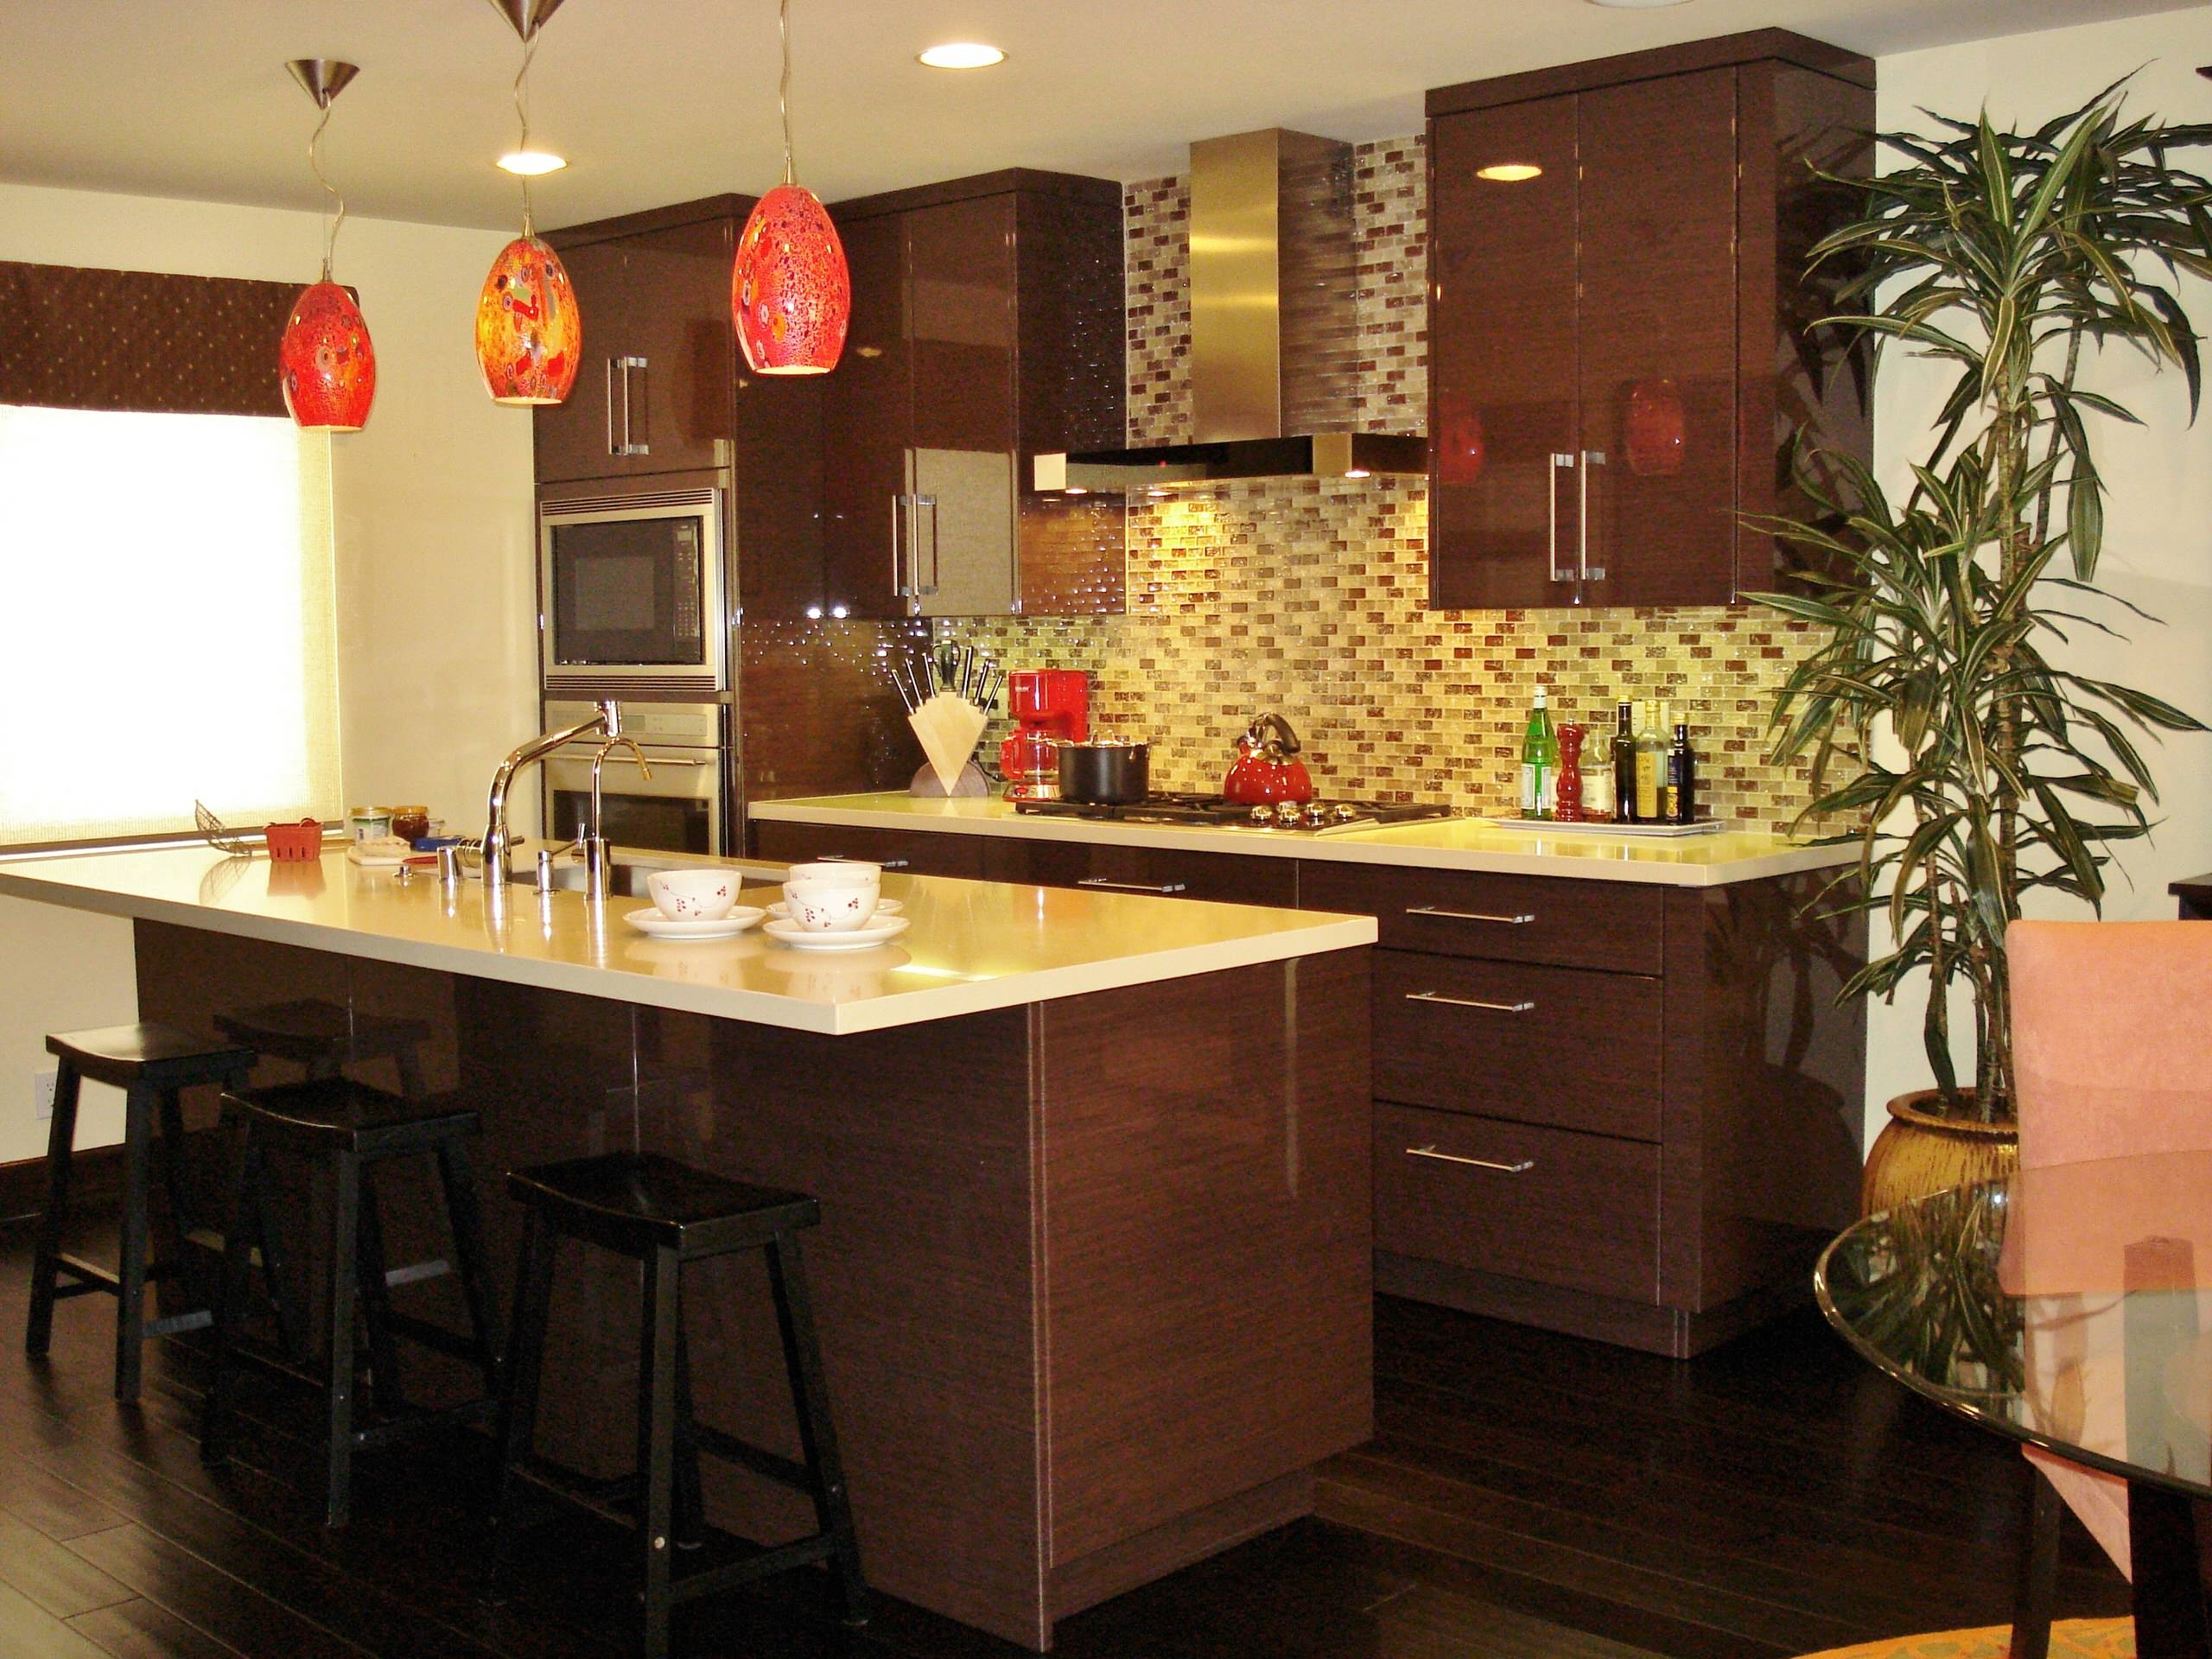 Contemporary kitchen remodel in Marina Del Rey featuring High Gloss cabinetry